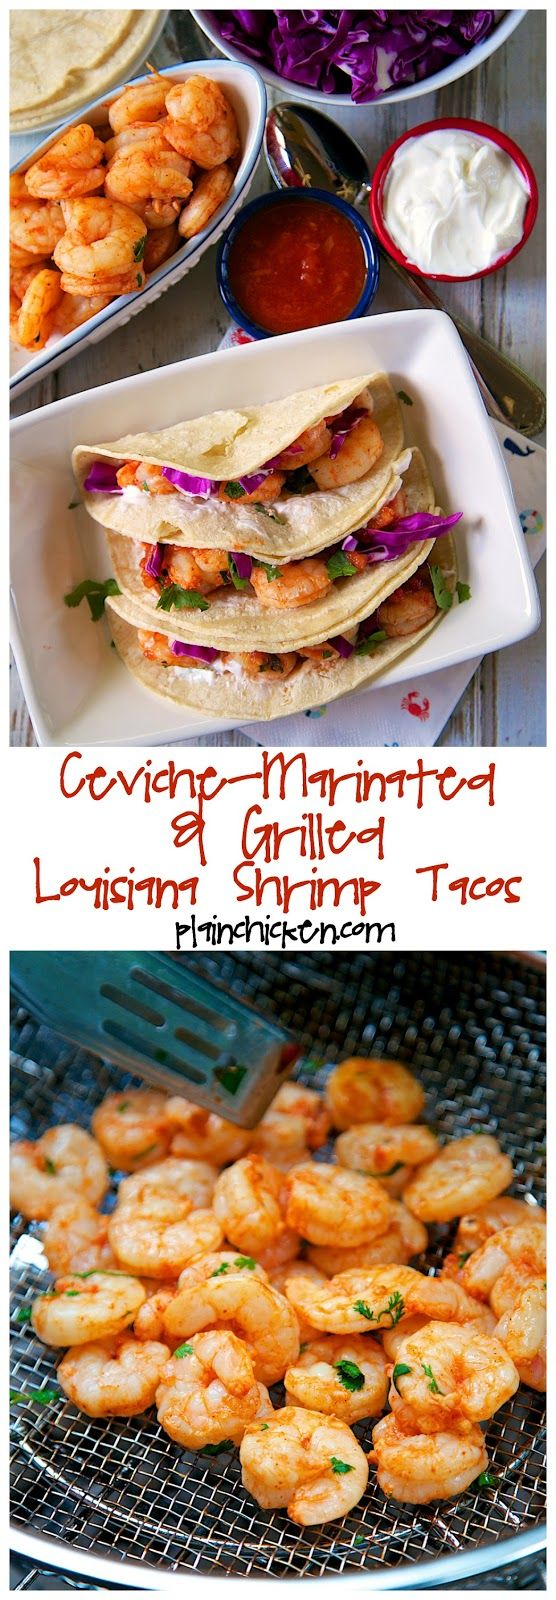 Ceviche-Marinated & Grilled Louisiana Shrimp Tacos Recipe - shrimp marinated in a mixture of tomato juice, lime juice, red onion, cilantro and chili powder. Marinate for 20 minutes and grill for 6 minutes to finish cooking. To assemble the tacos, we grilled a few corn tortillas and topped them with shrimp, sour cream, cabbage and salsa. SO good! Better than any restaurant!